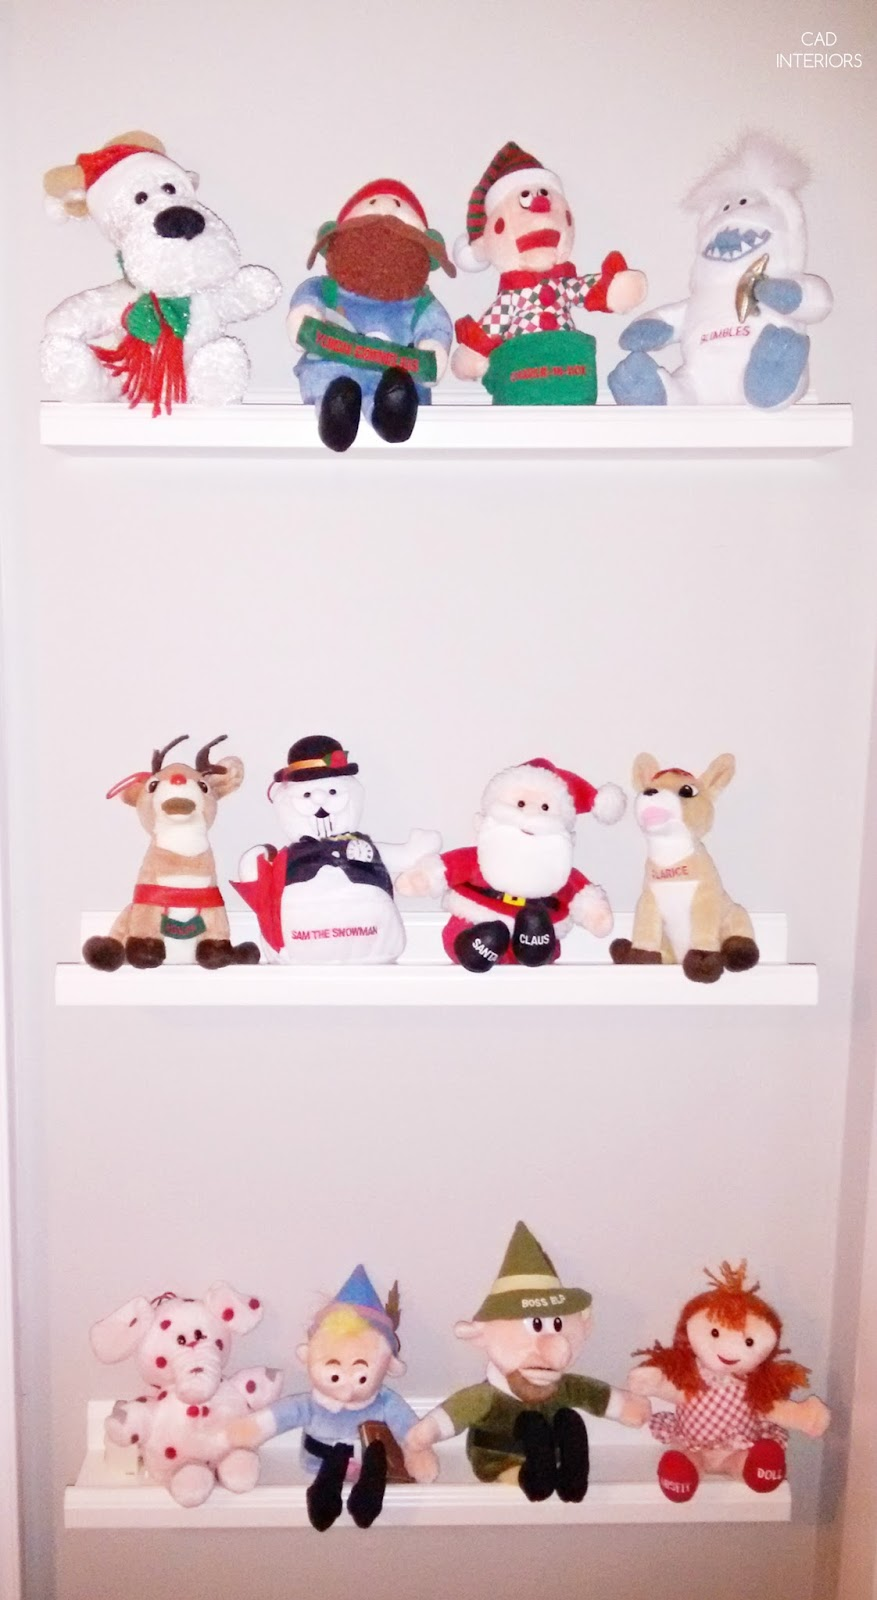 CAD INTERIORS holiday home 2015 kids bedroom holiday decor Christmas island of the misfits